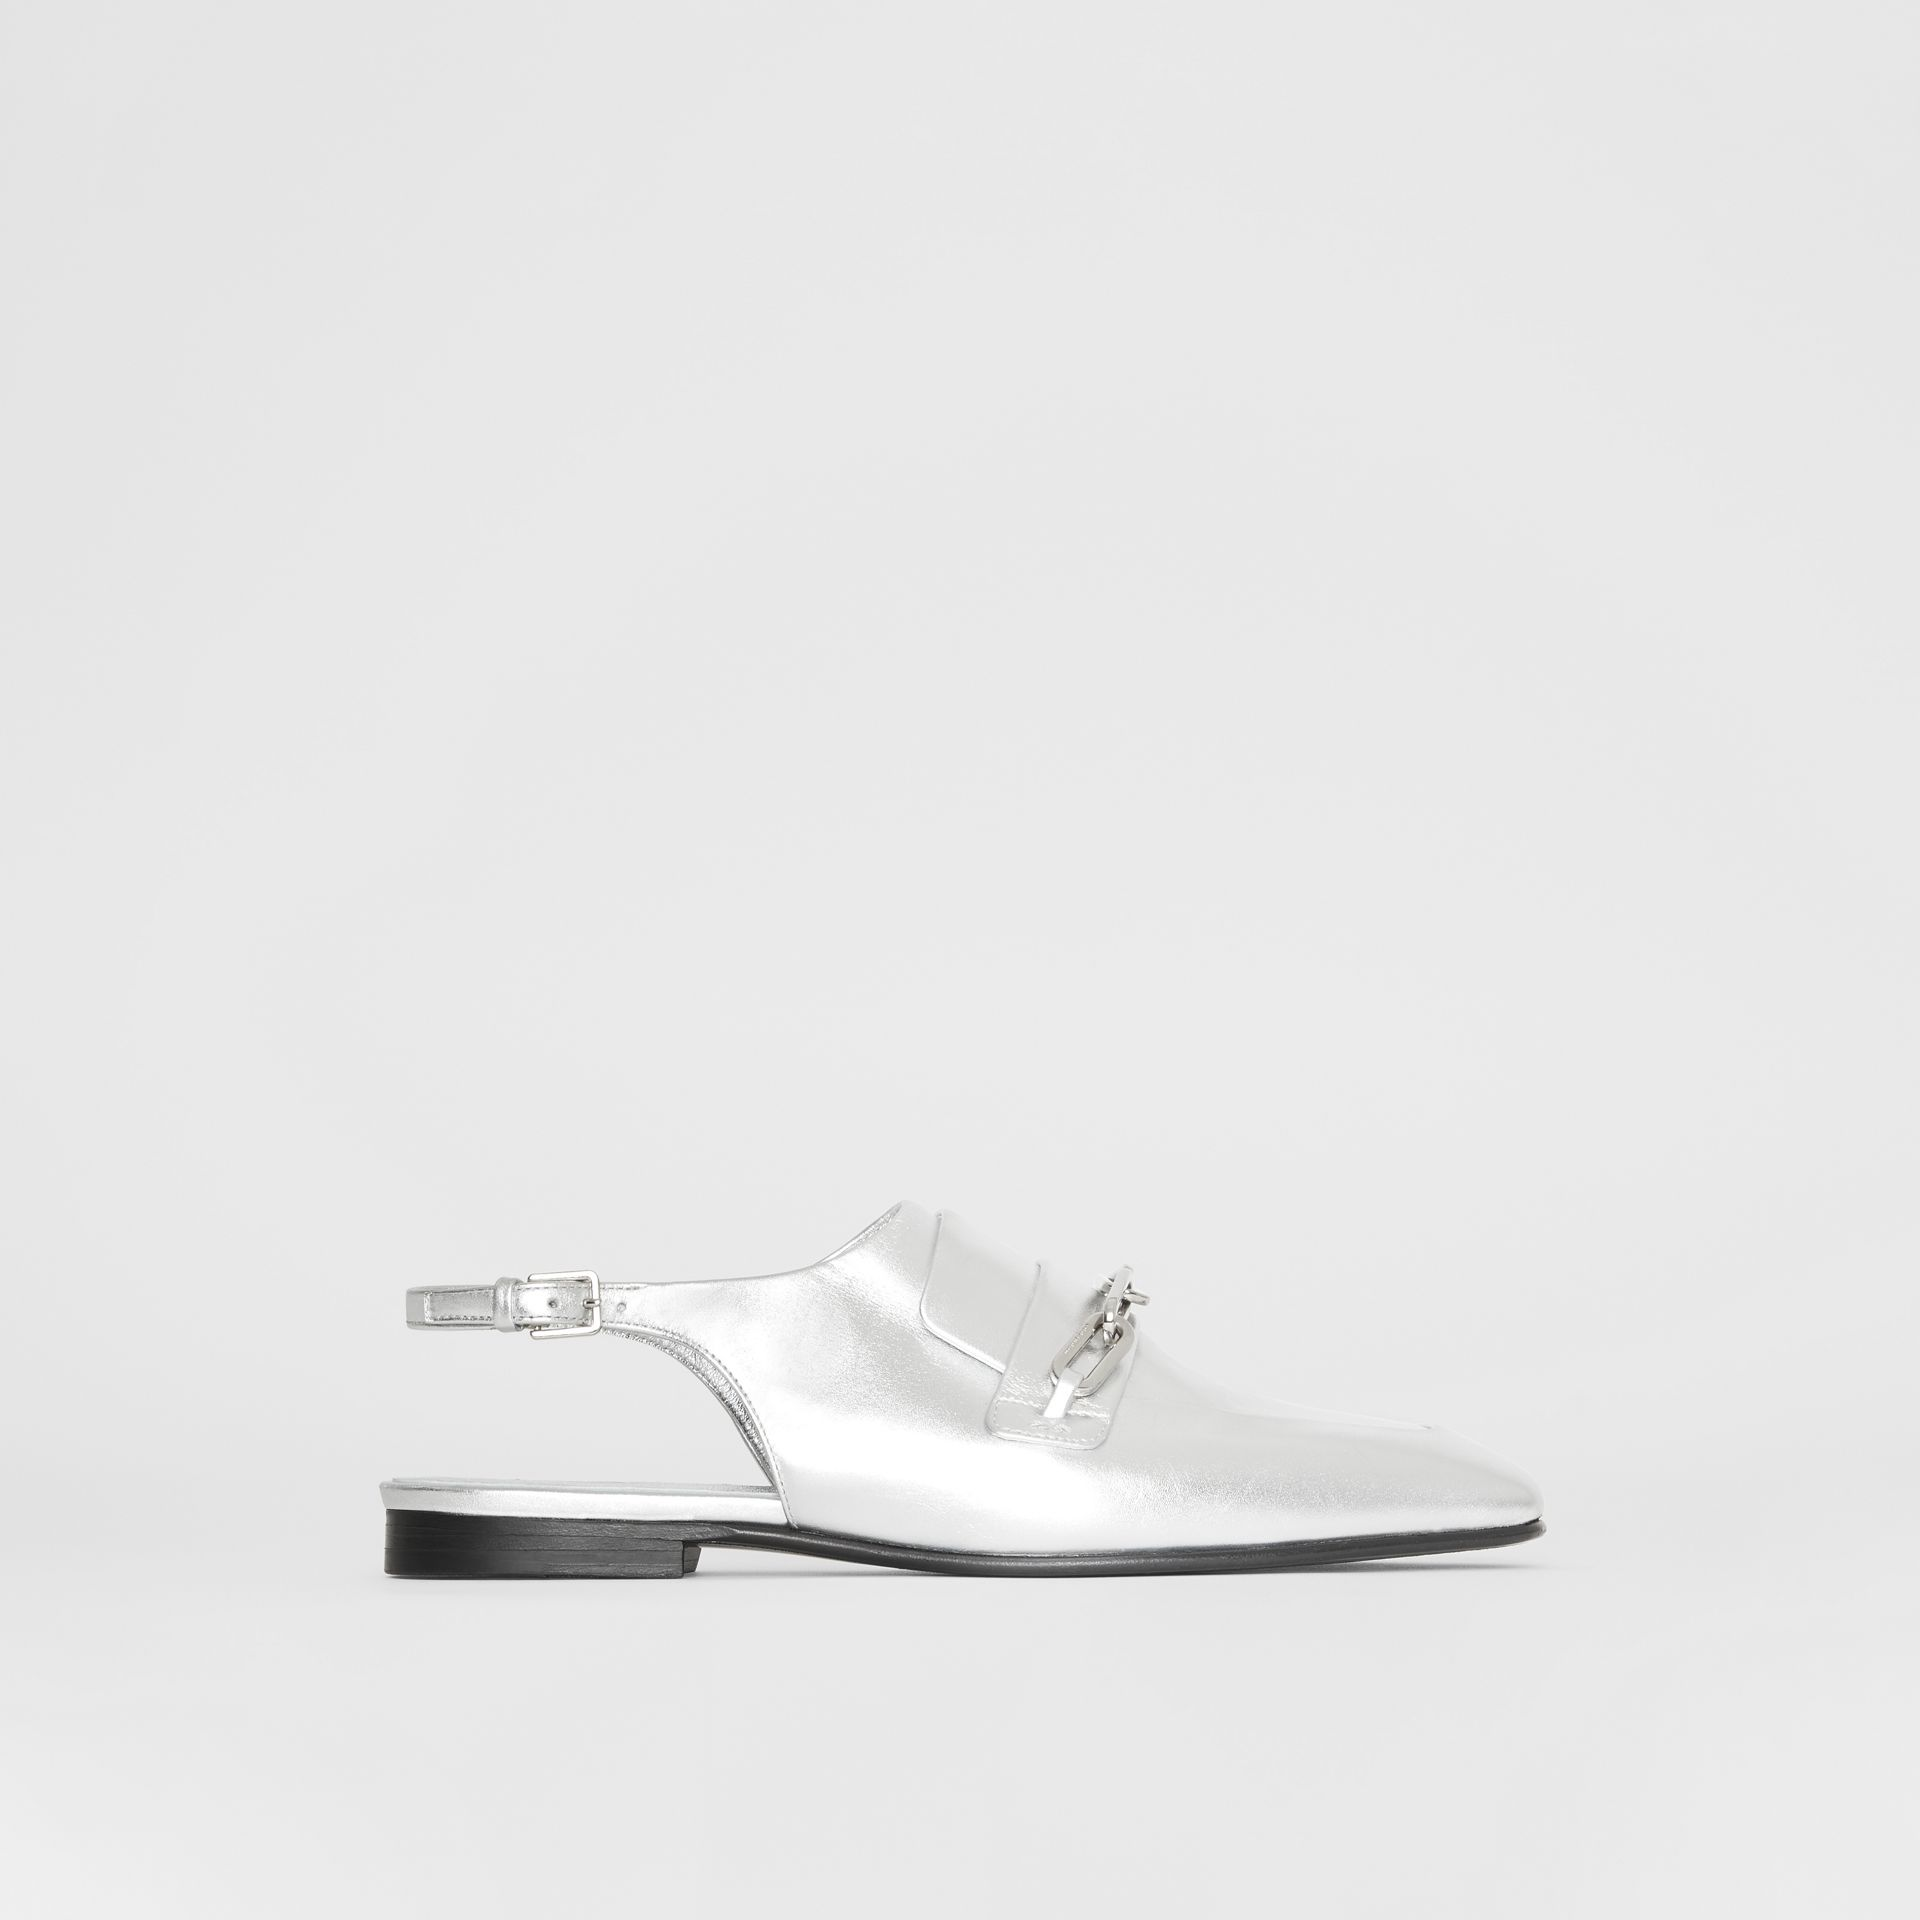 Link Detail Leather Slingback Loafers in Silver Grey - Women | Burberry Singapore - gallery image 5